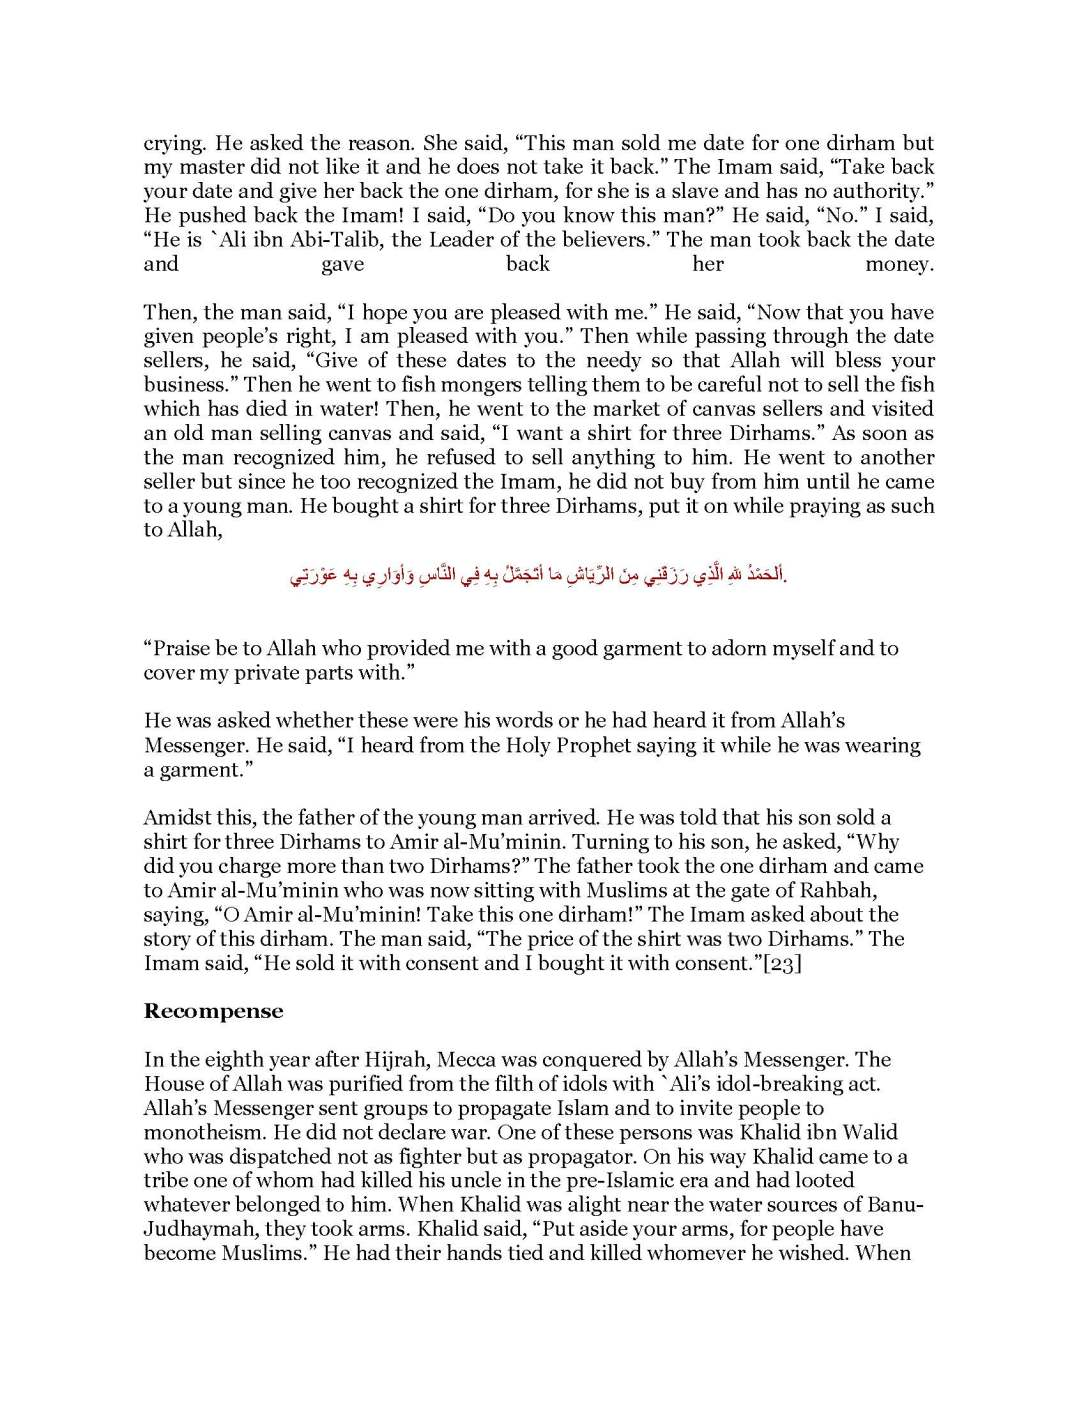 Examples-of-Imam-Ali's-(as)-Moral-Virtues_Page_18